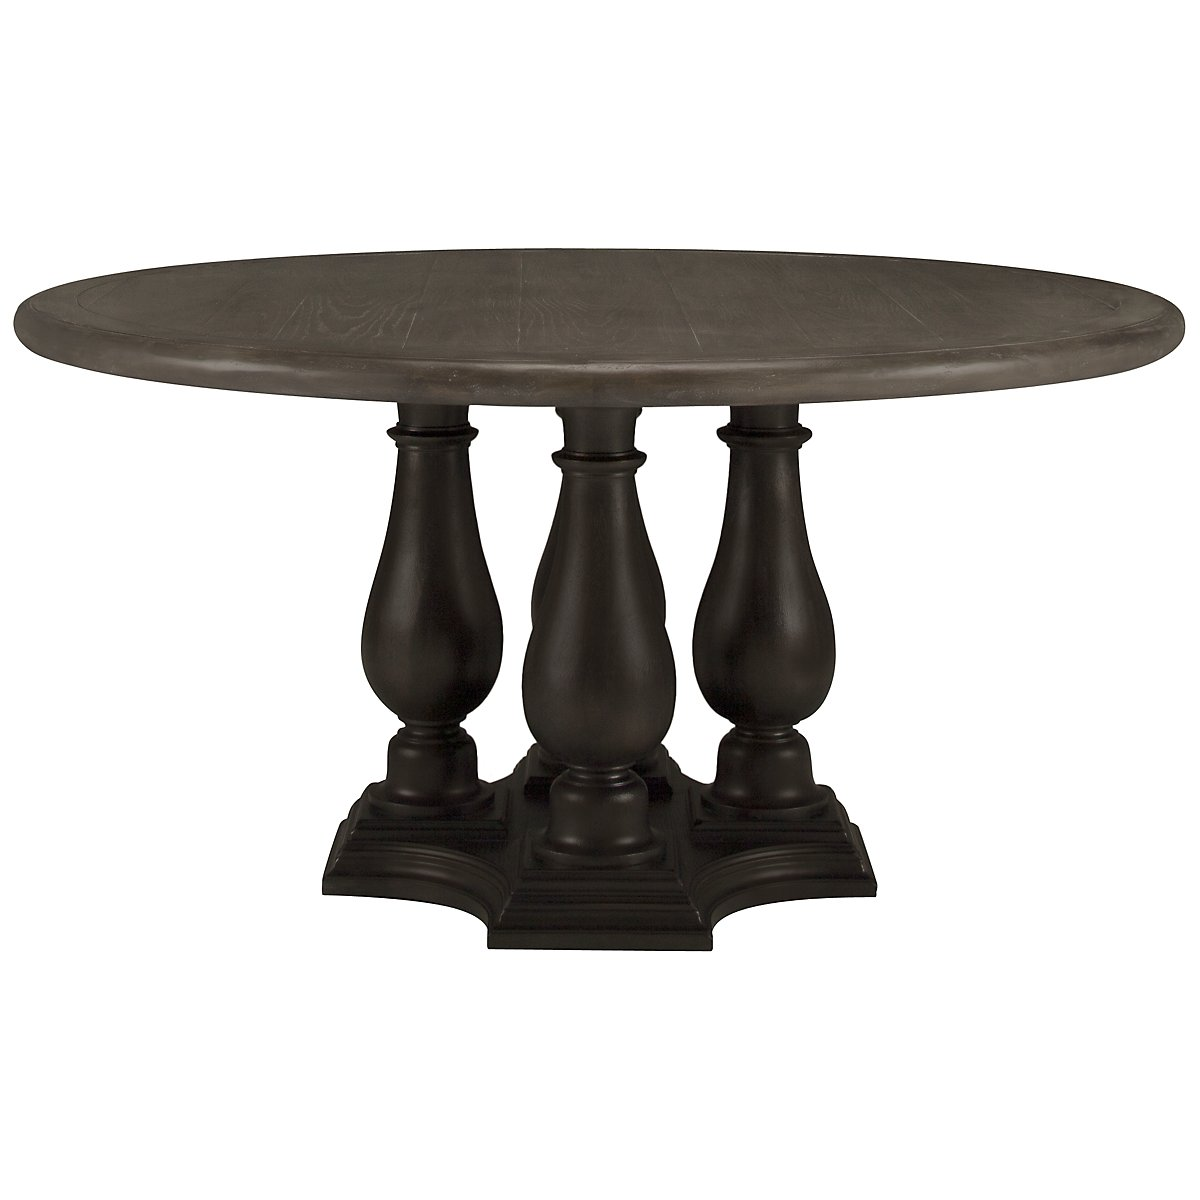 Belgian Oak Light Tone Round Table